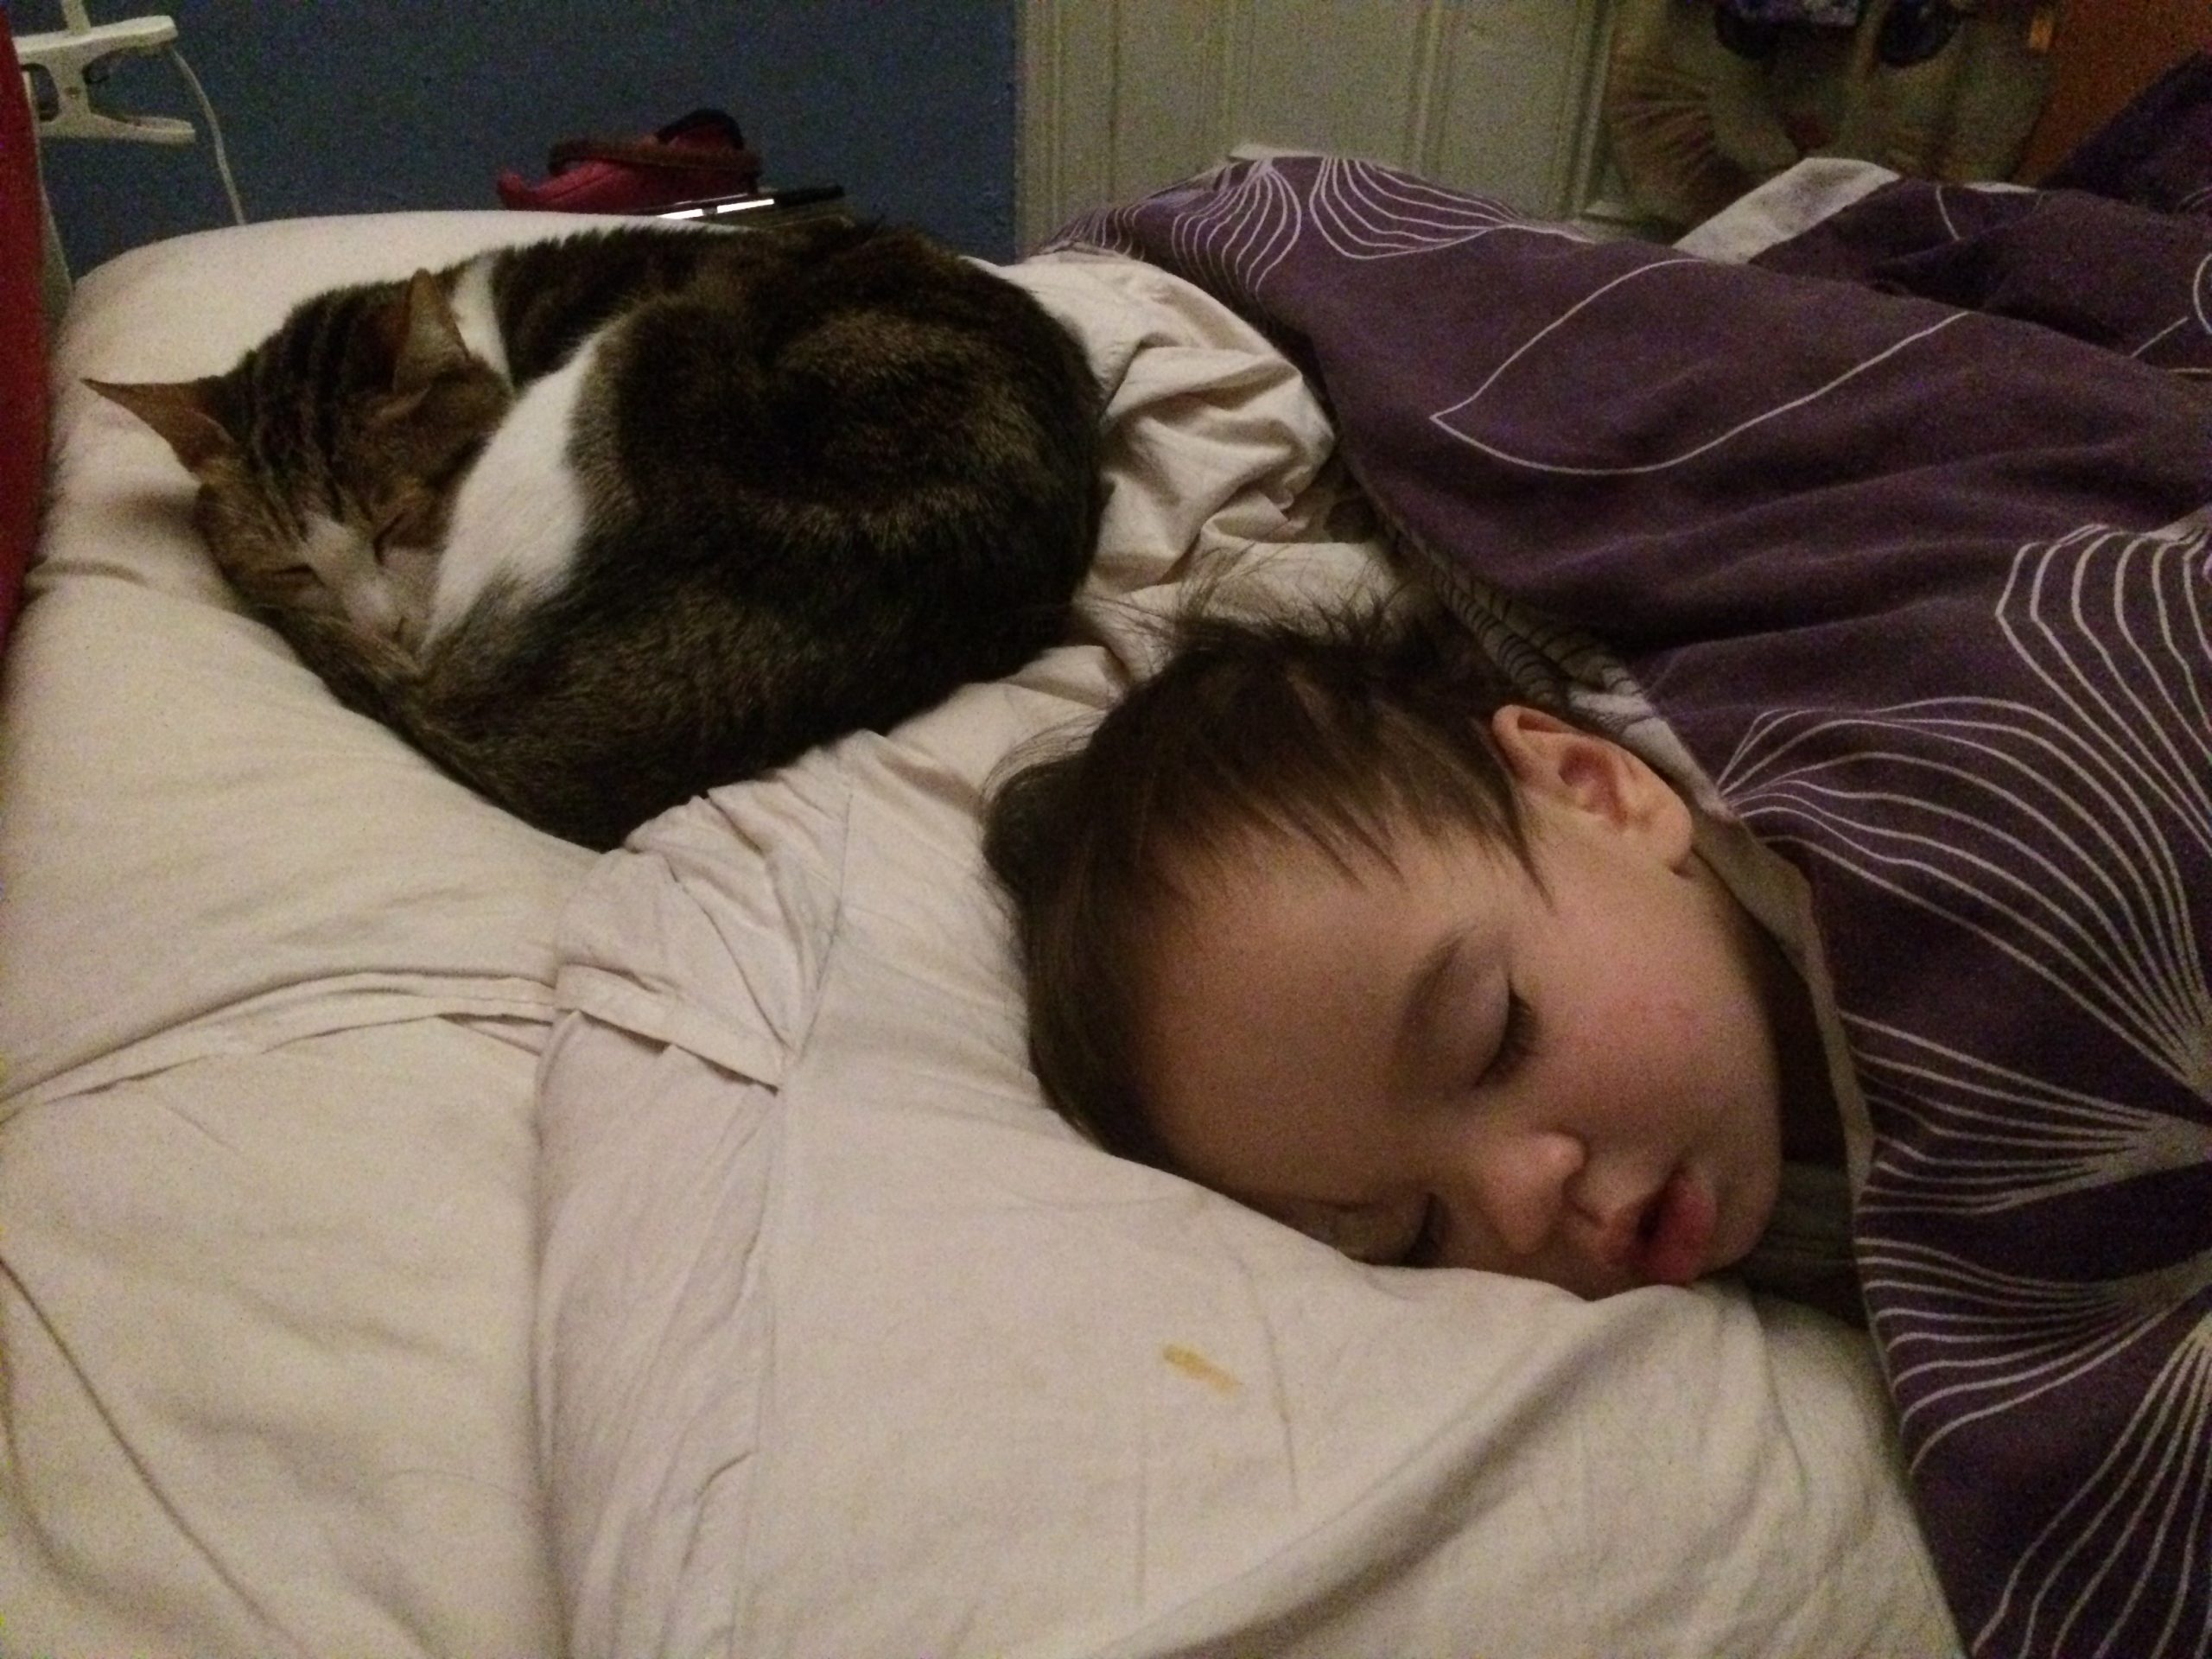 Bed sharing with cat(s)